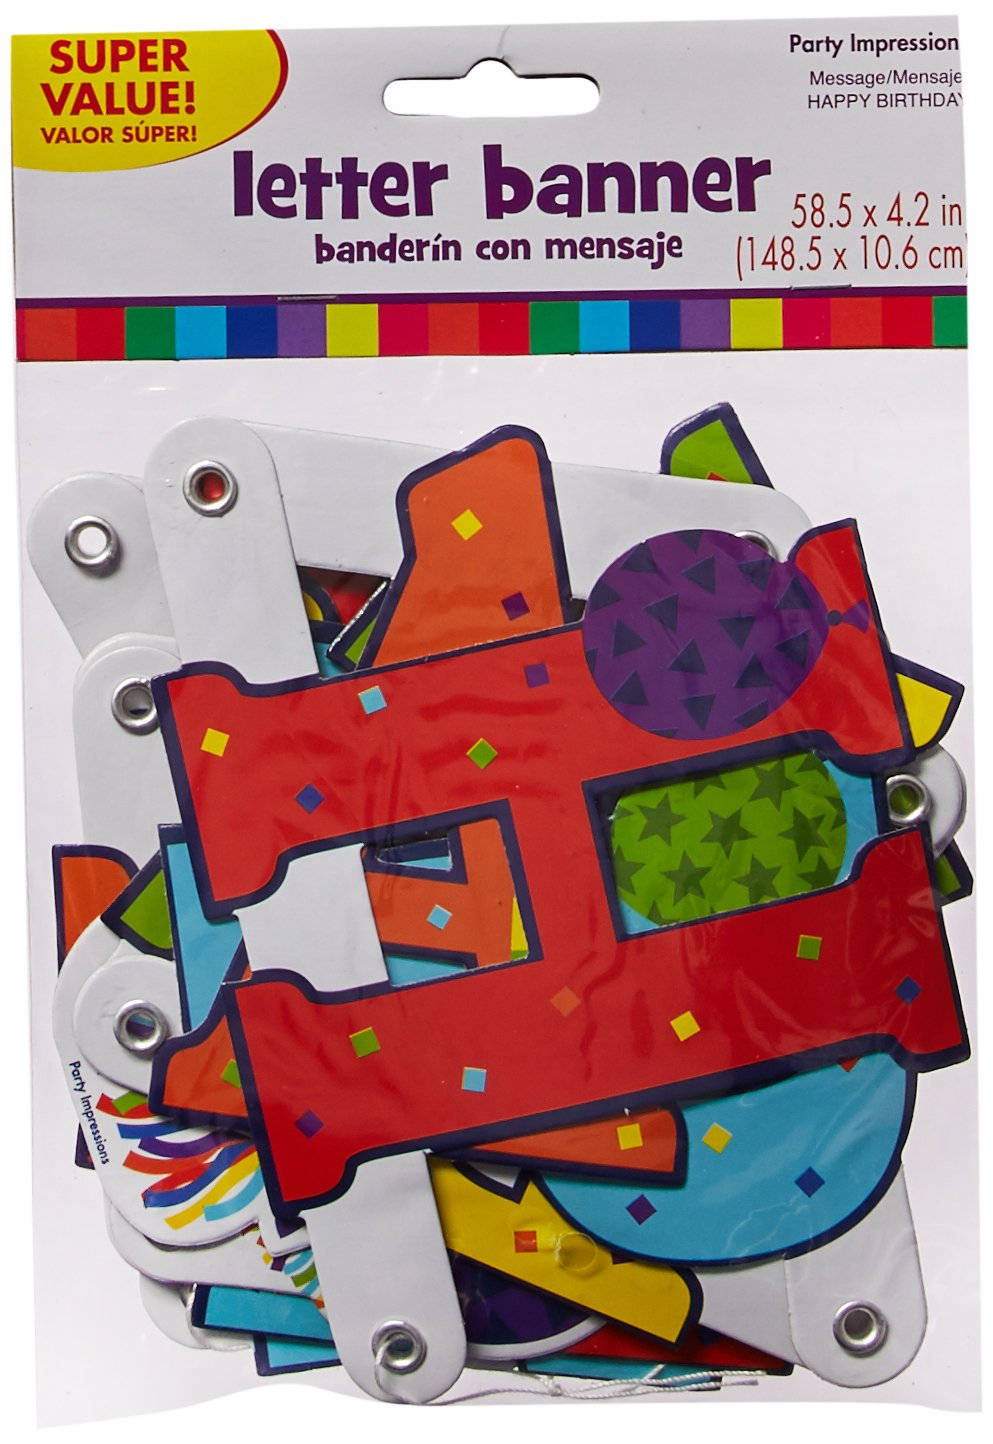 Birthday Illustrated Letter Banner 18 Ct 120075 Horns /& Balloons Collection TradeMart Inc